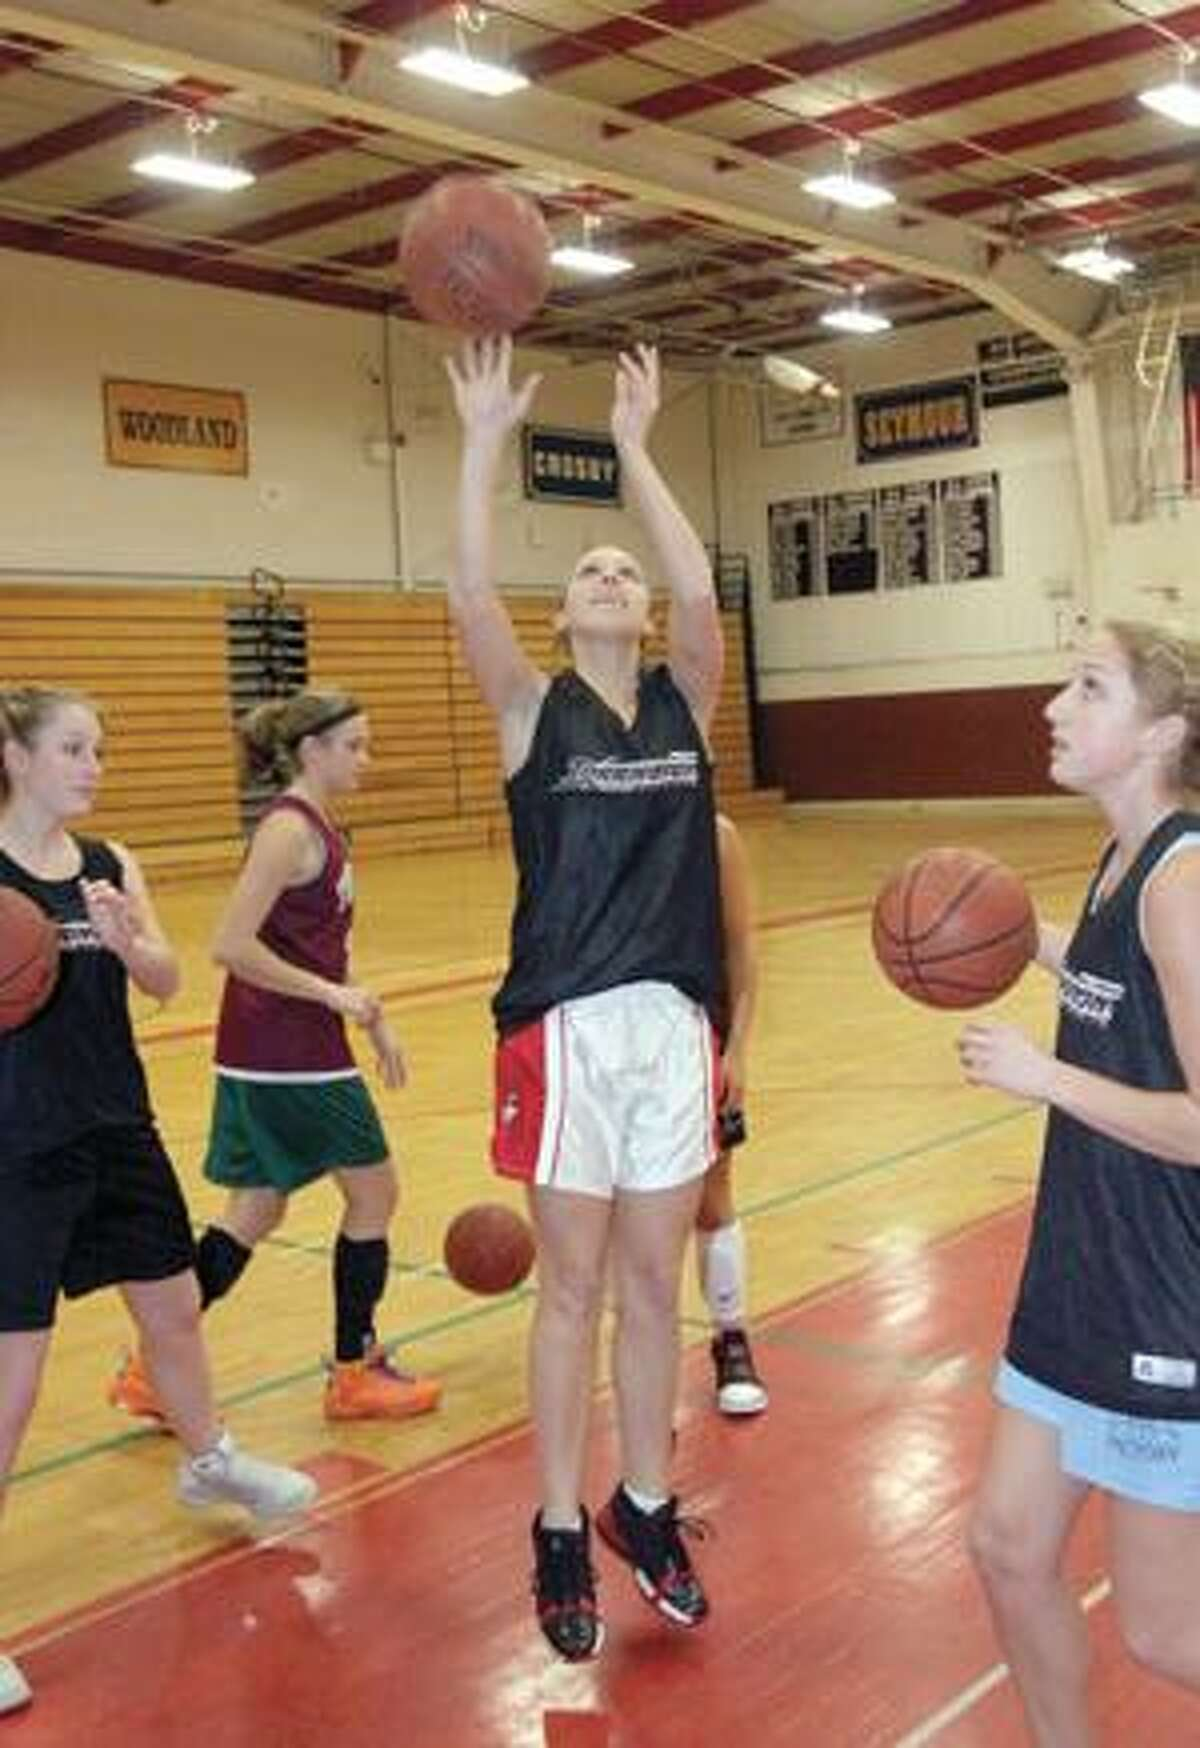 SONJA ZINKE/Register Citizen Torrington's Kayla Langenheim takes a shot during practice with her team at Torrington High School Thursday. Purchase a glossy print of this photo and more at www.registercitizen.com.